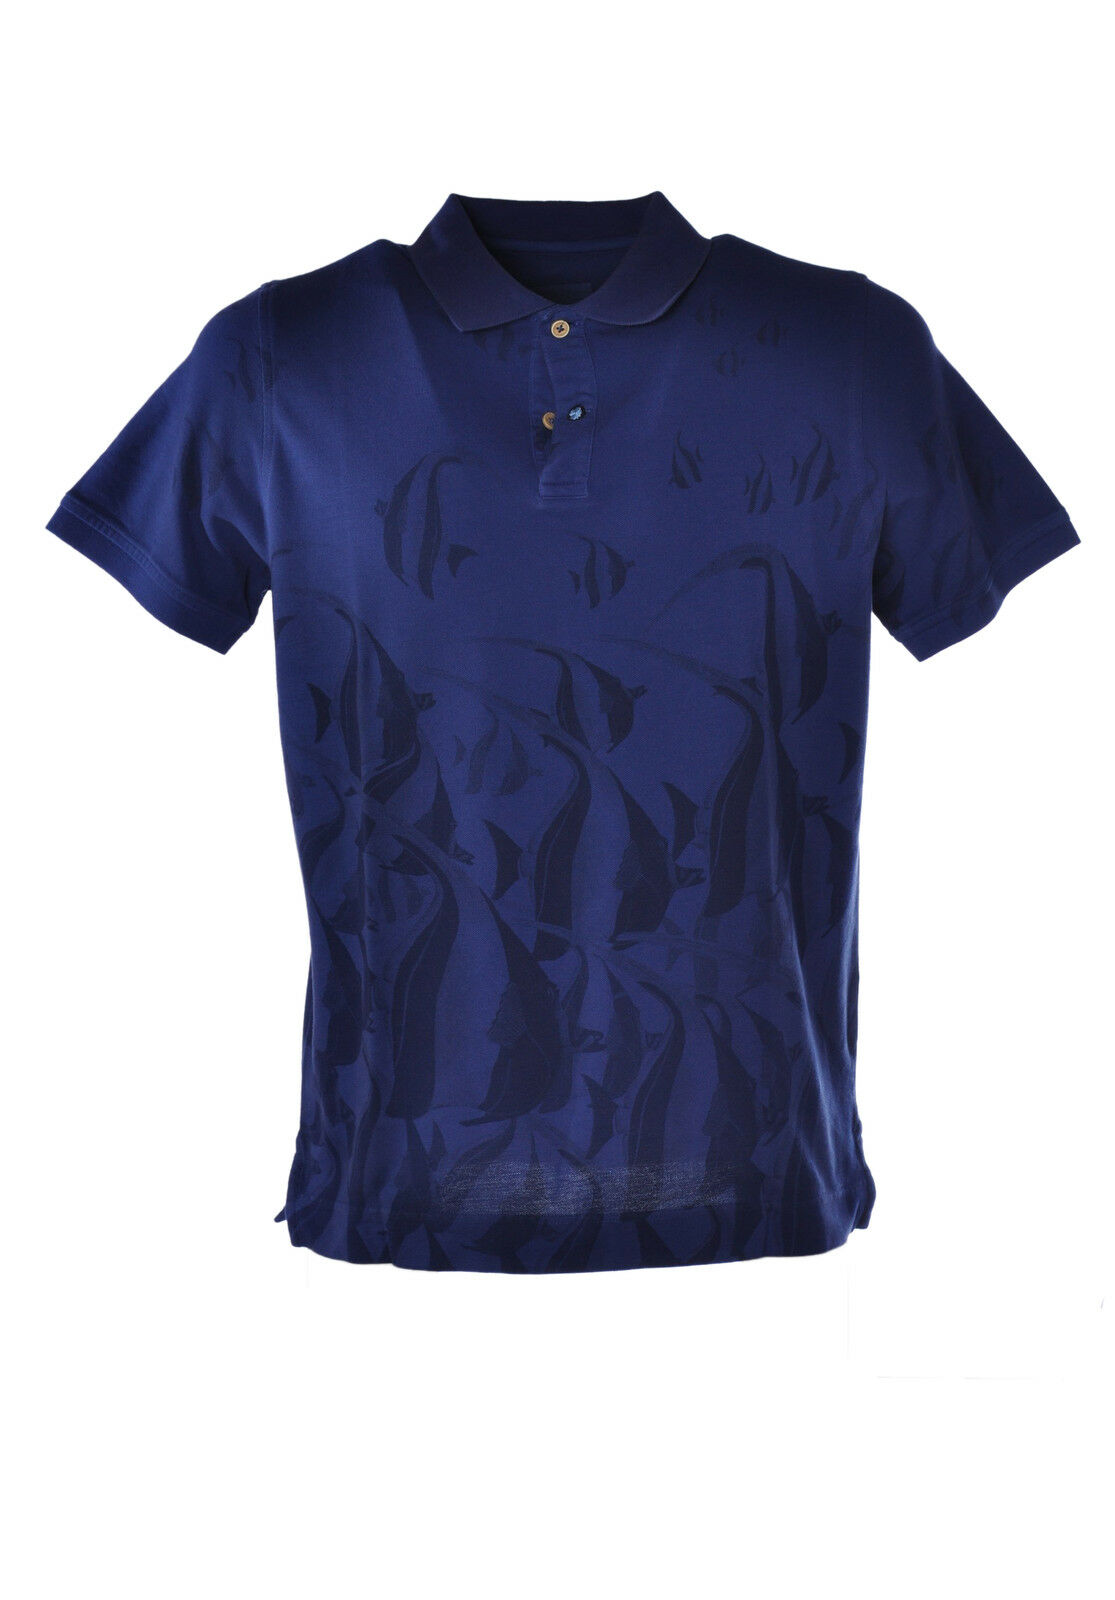 Heritage  -  Polo - Male - 54 - bluee - 1737418C162322